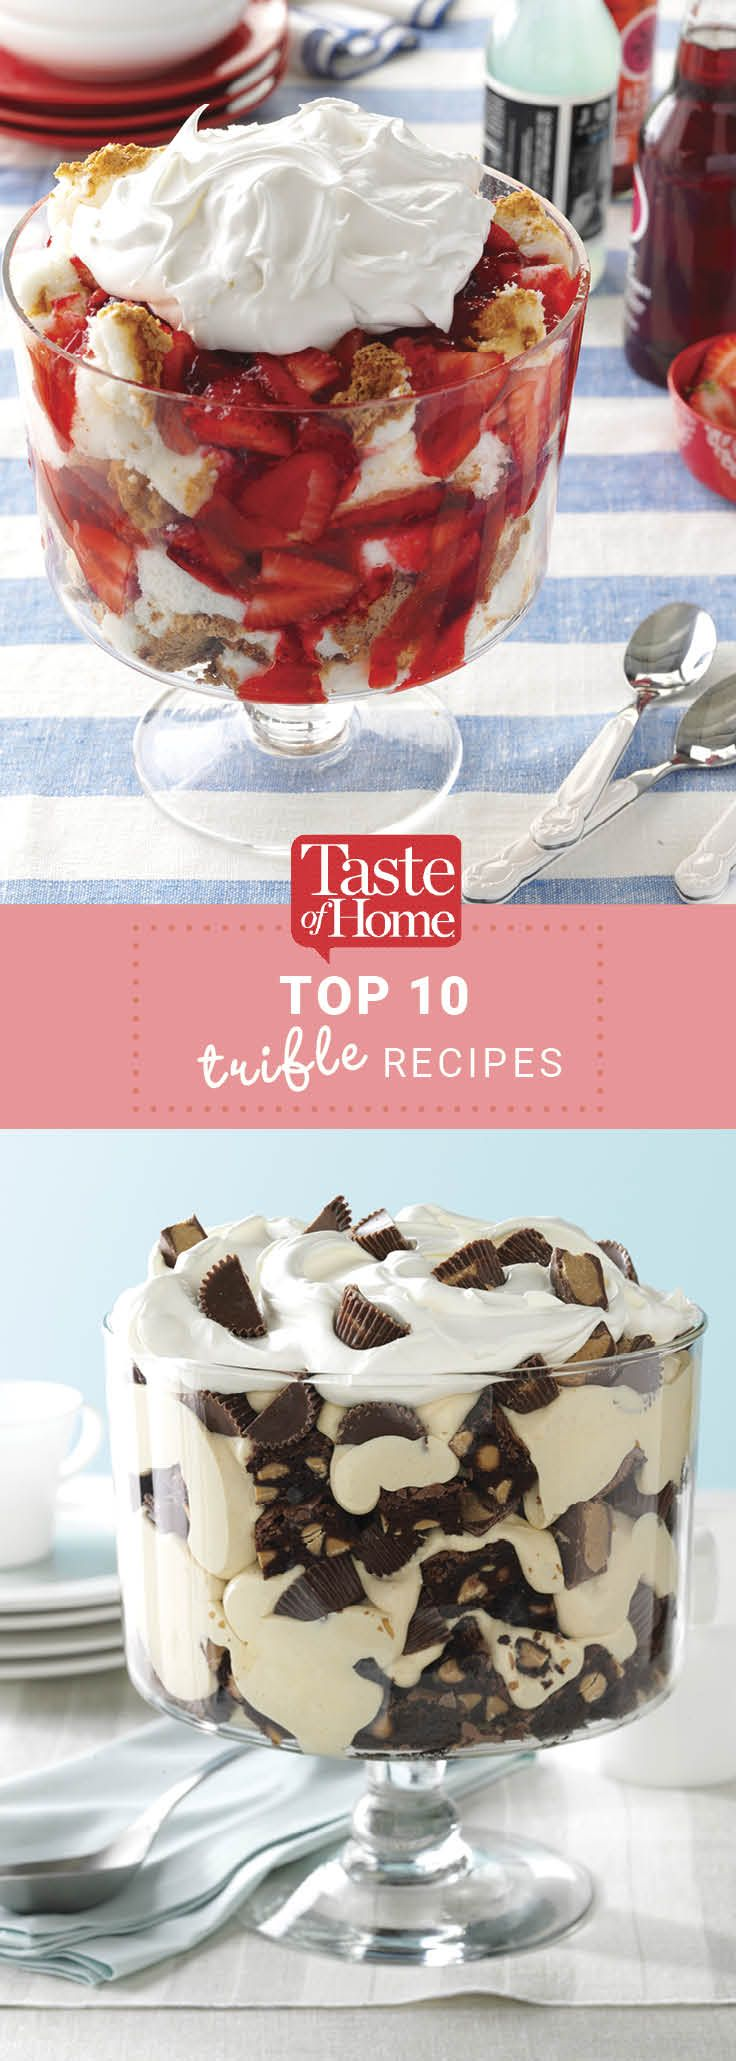 Top 10 Trifle Recipes from Taste of Home